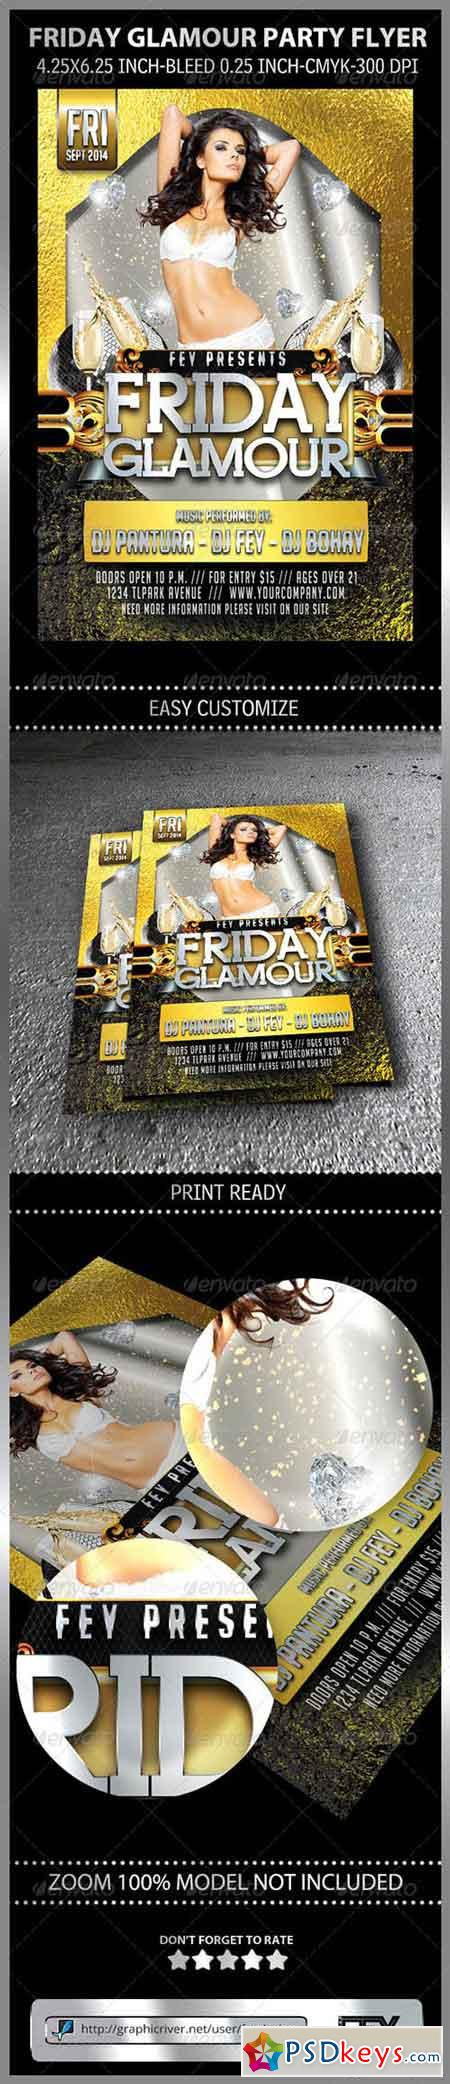 Friday Glamour Party Flyer 8619796